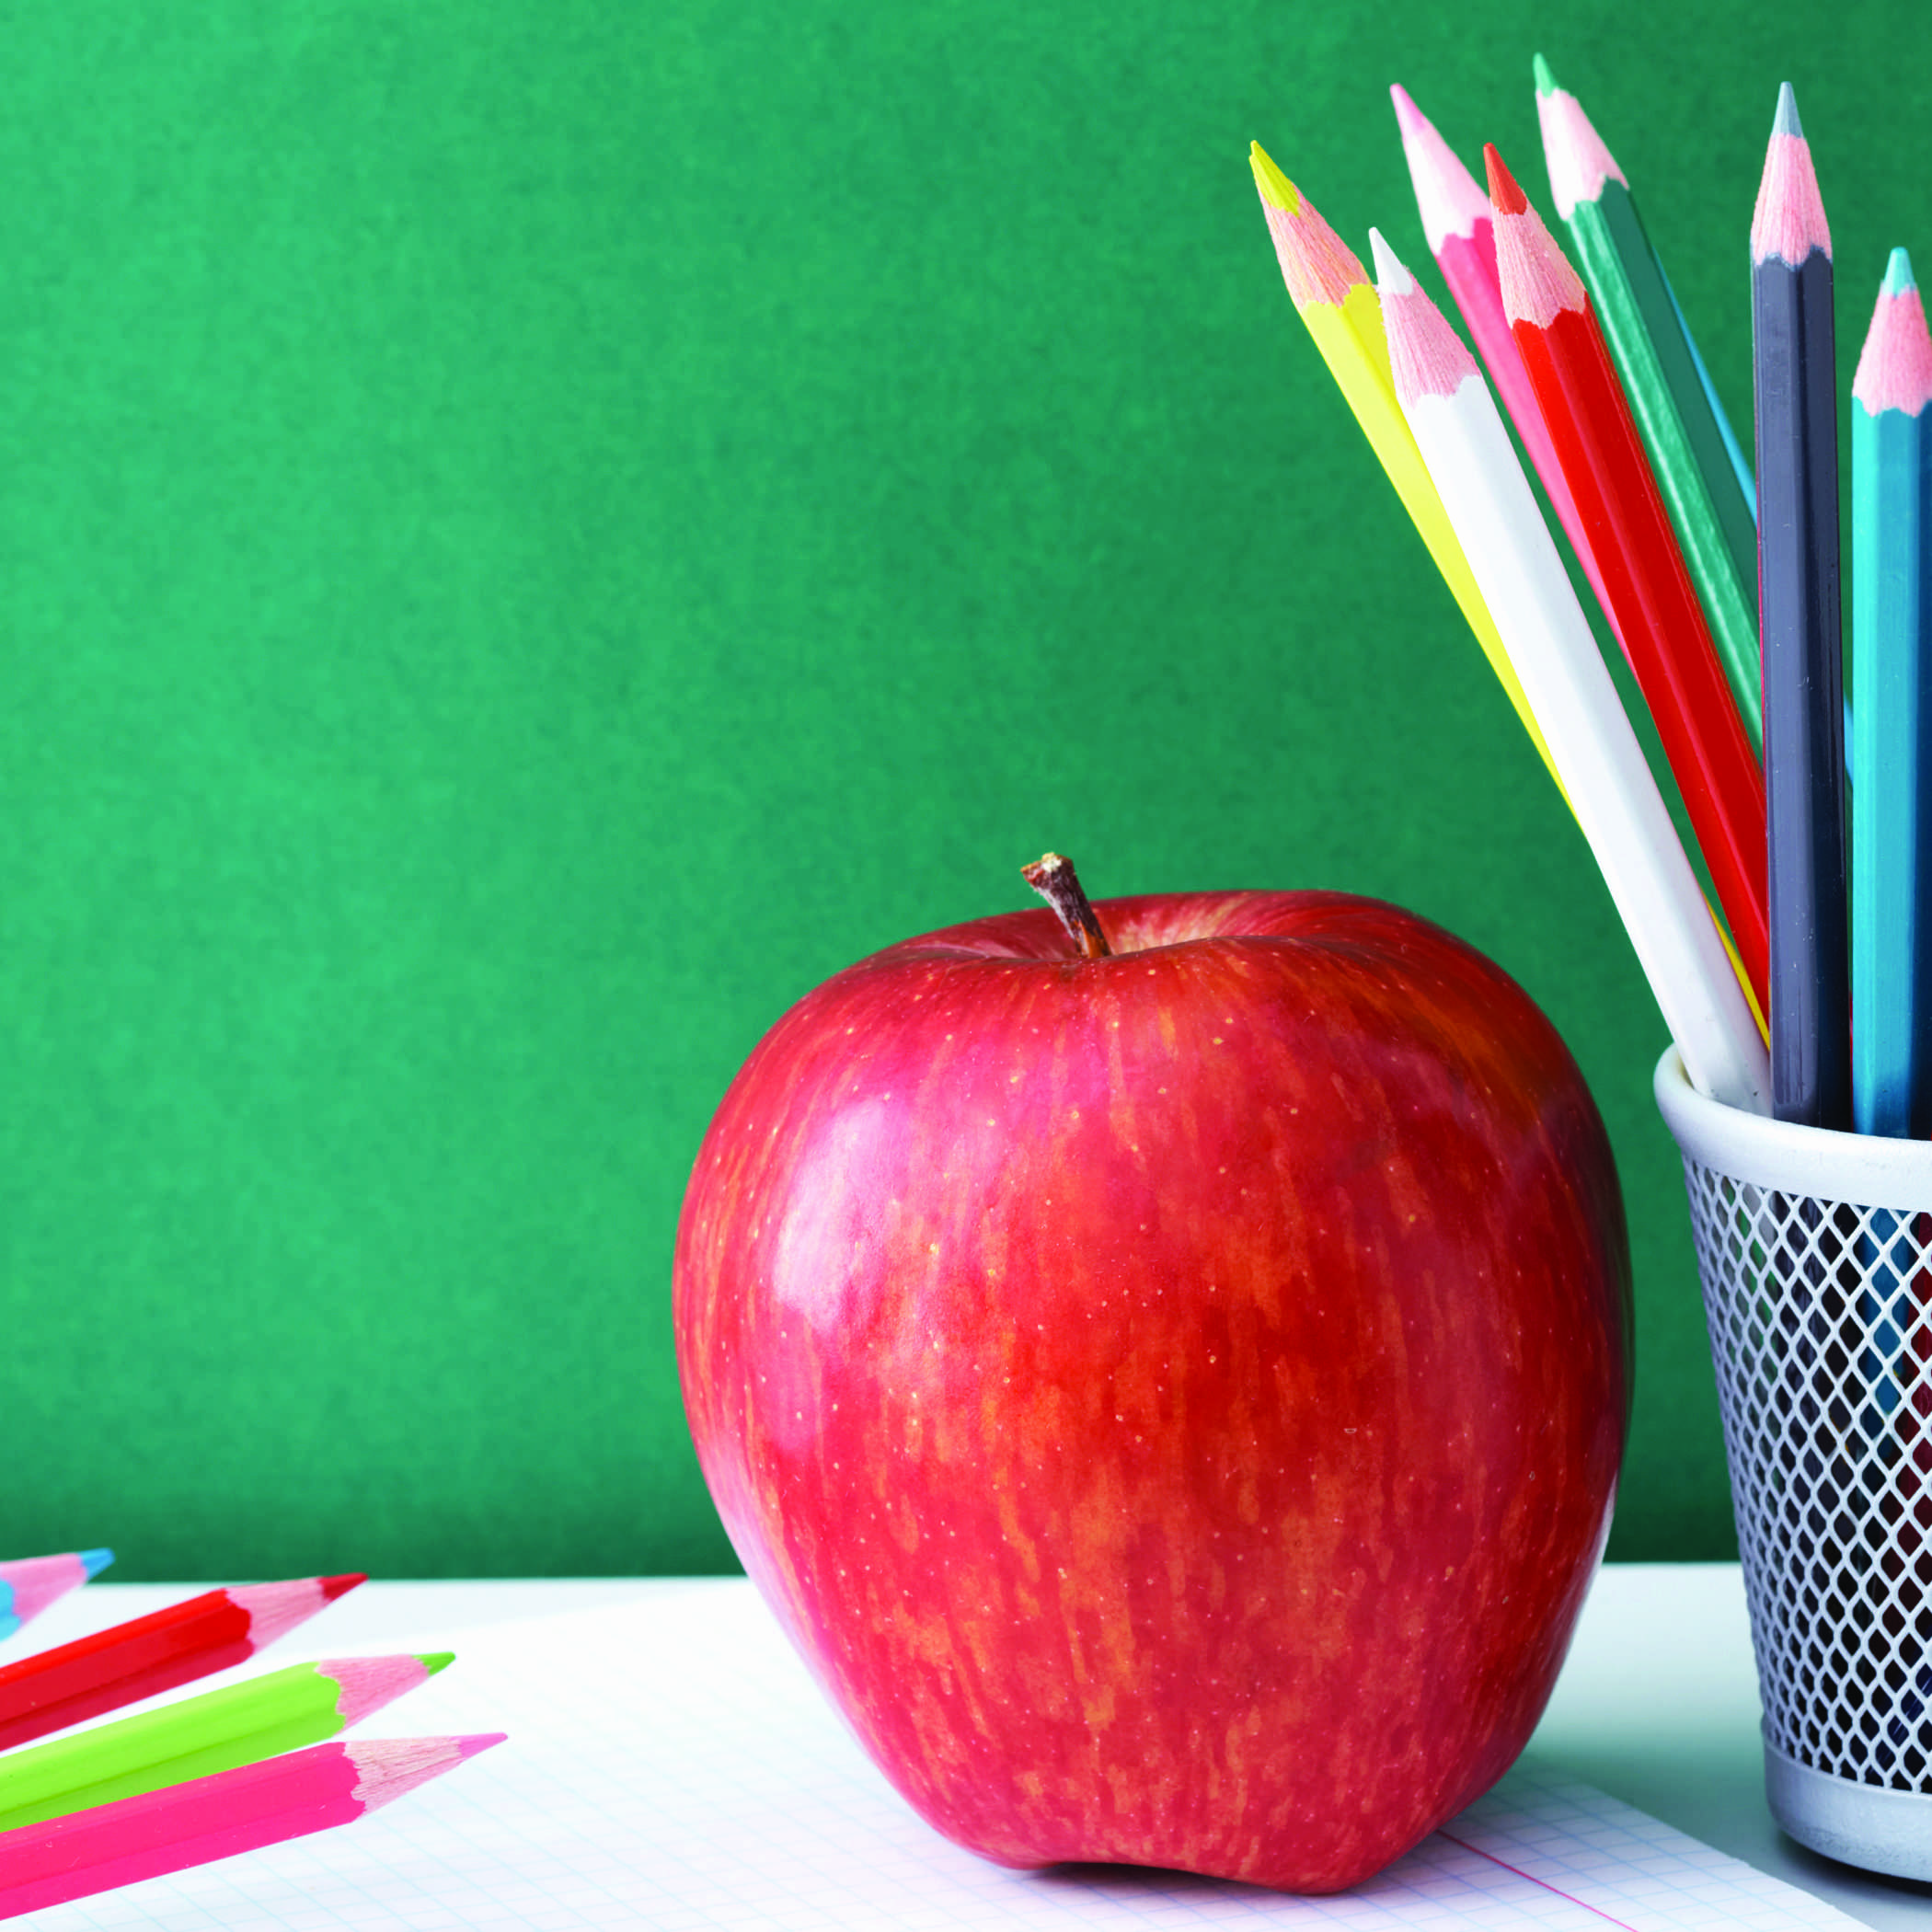 a red apple and a cup of colored pencils on a desk